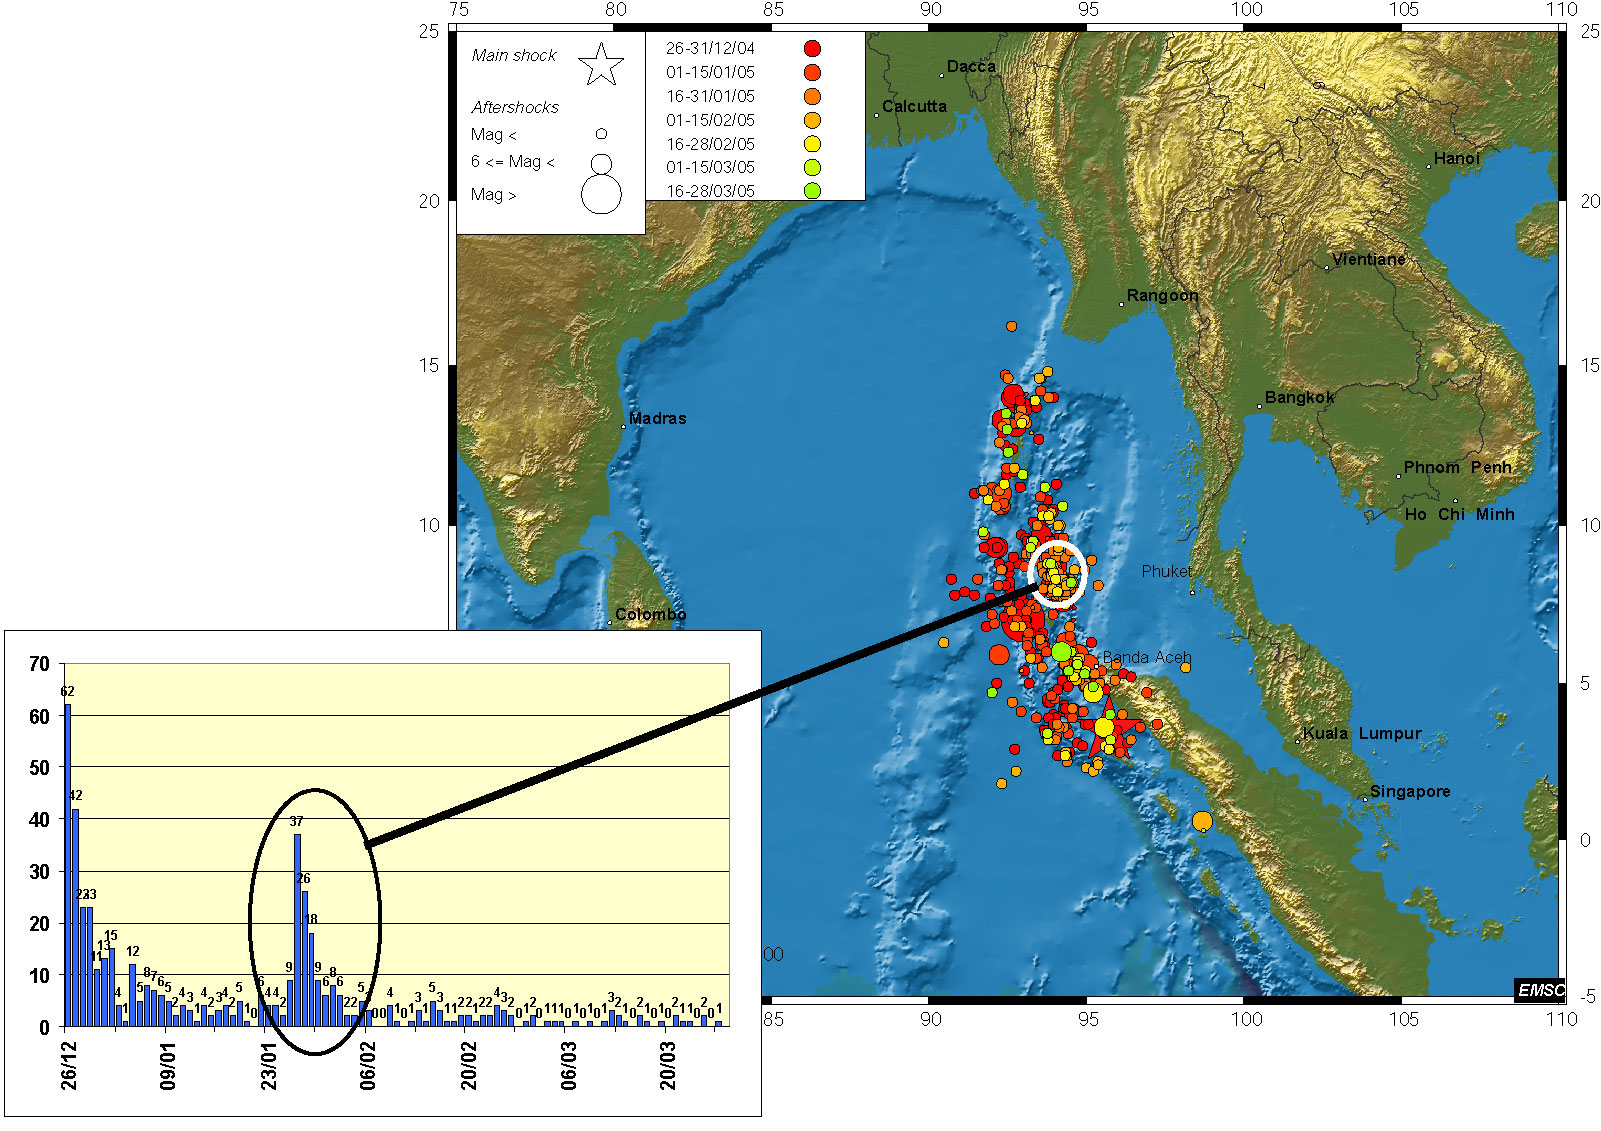 Sumatra aftershocks distribution